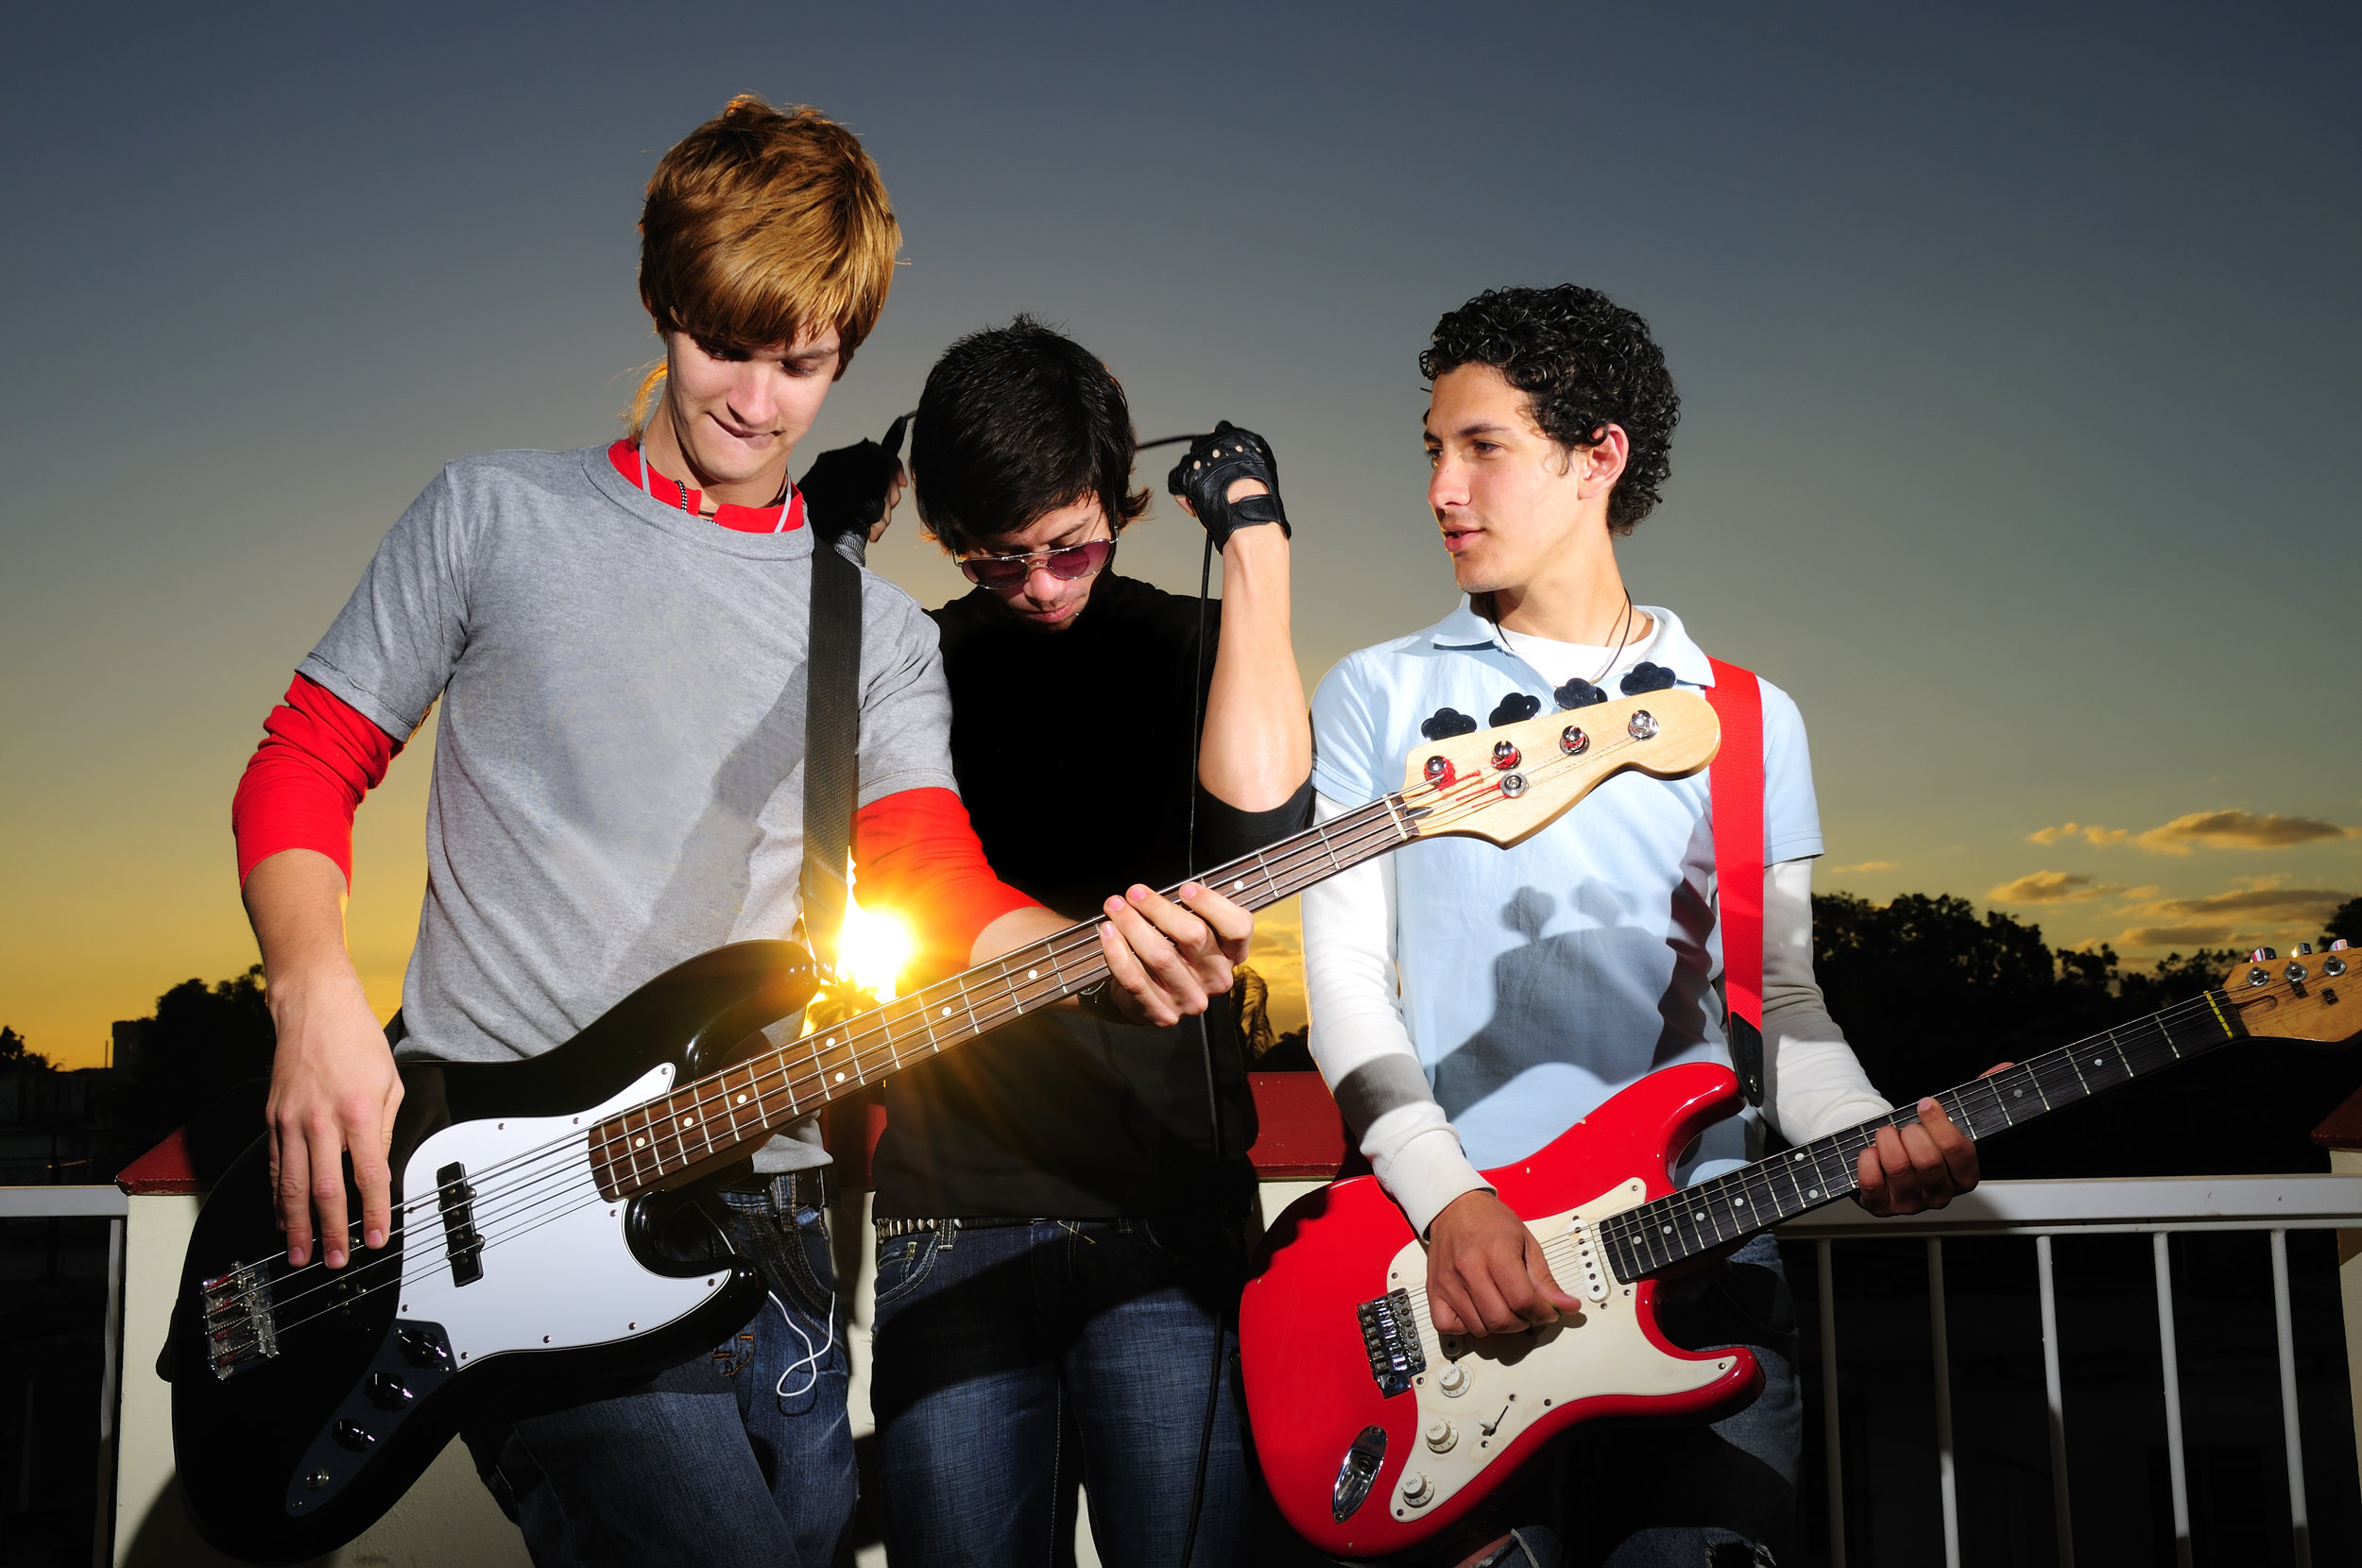 Young musicians posing with instruments